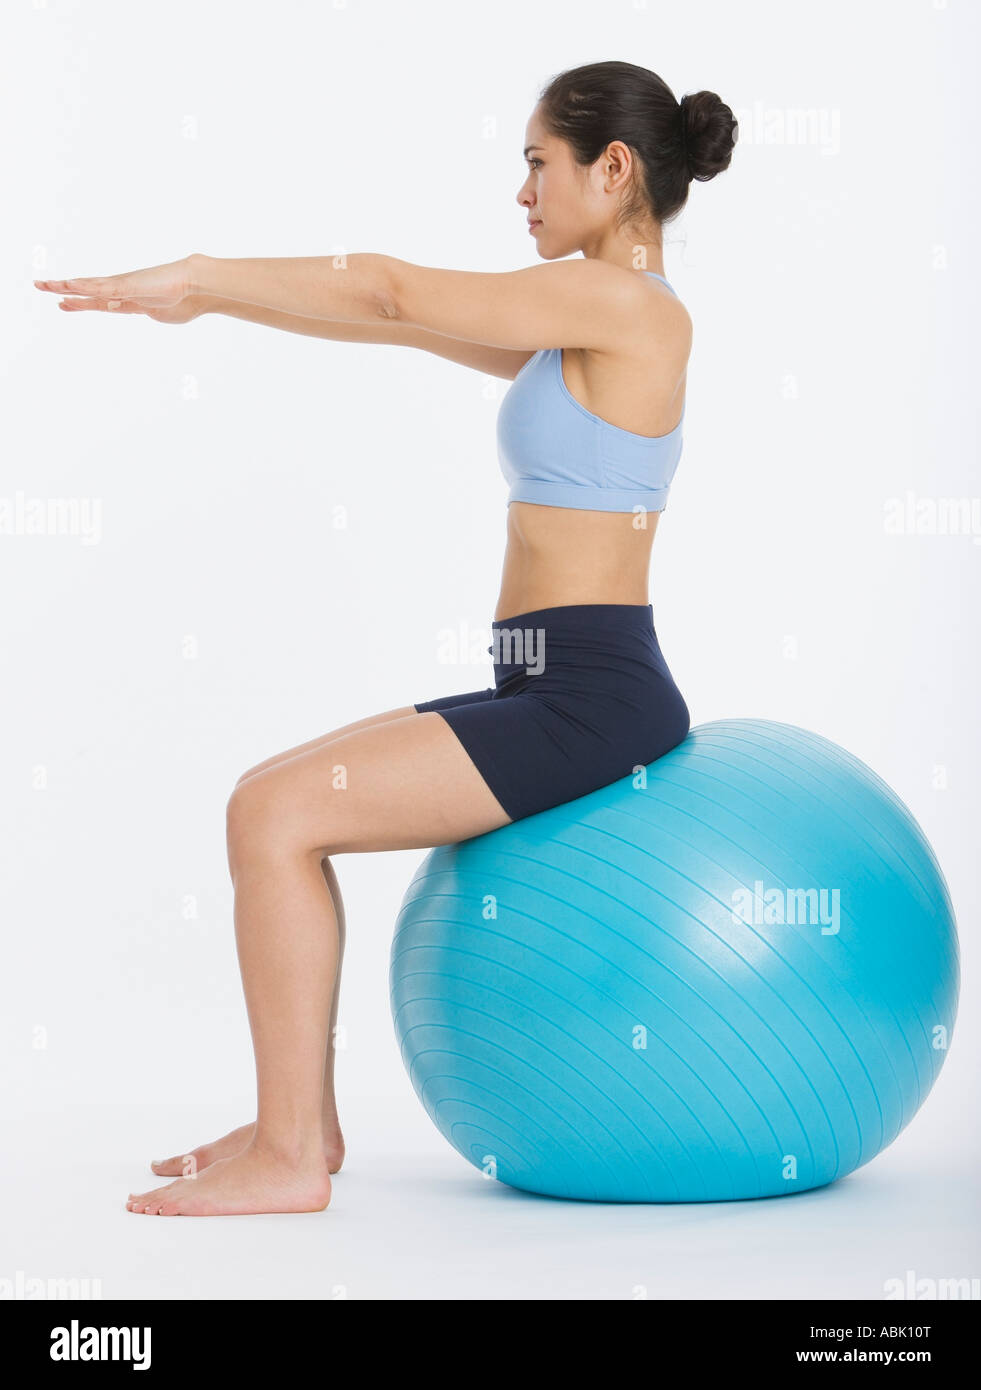 Woman sitting on exercise ball - Stock Image